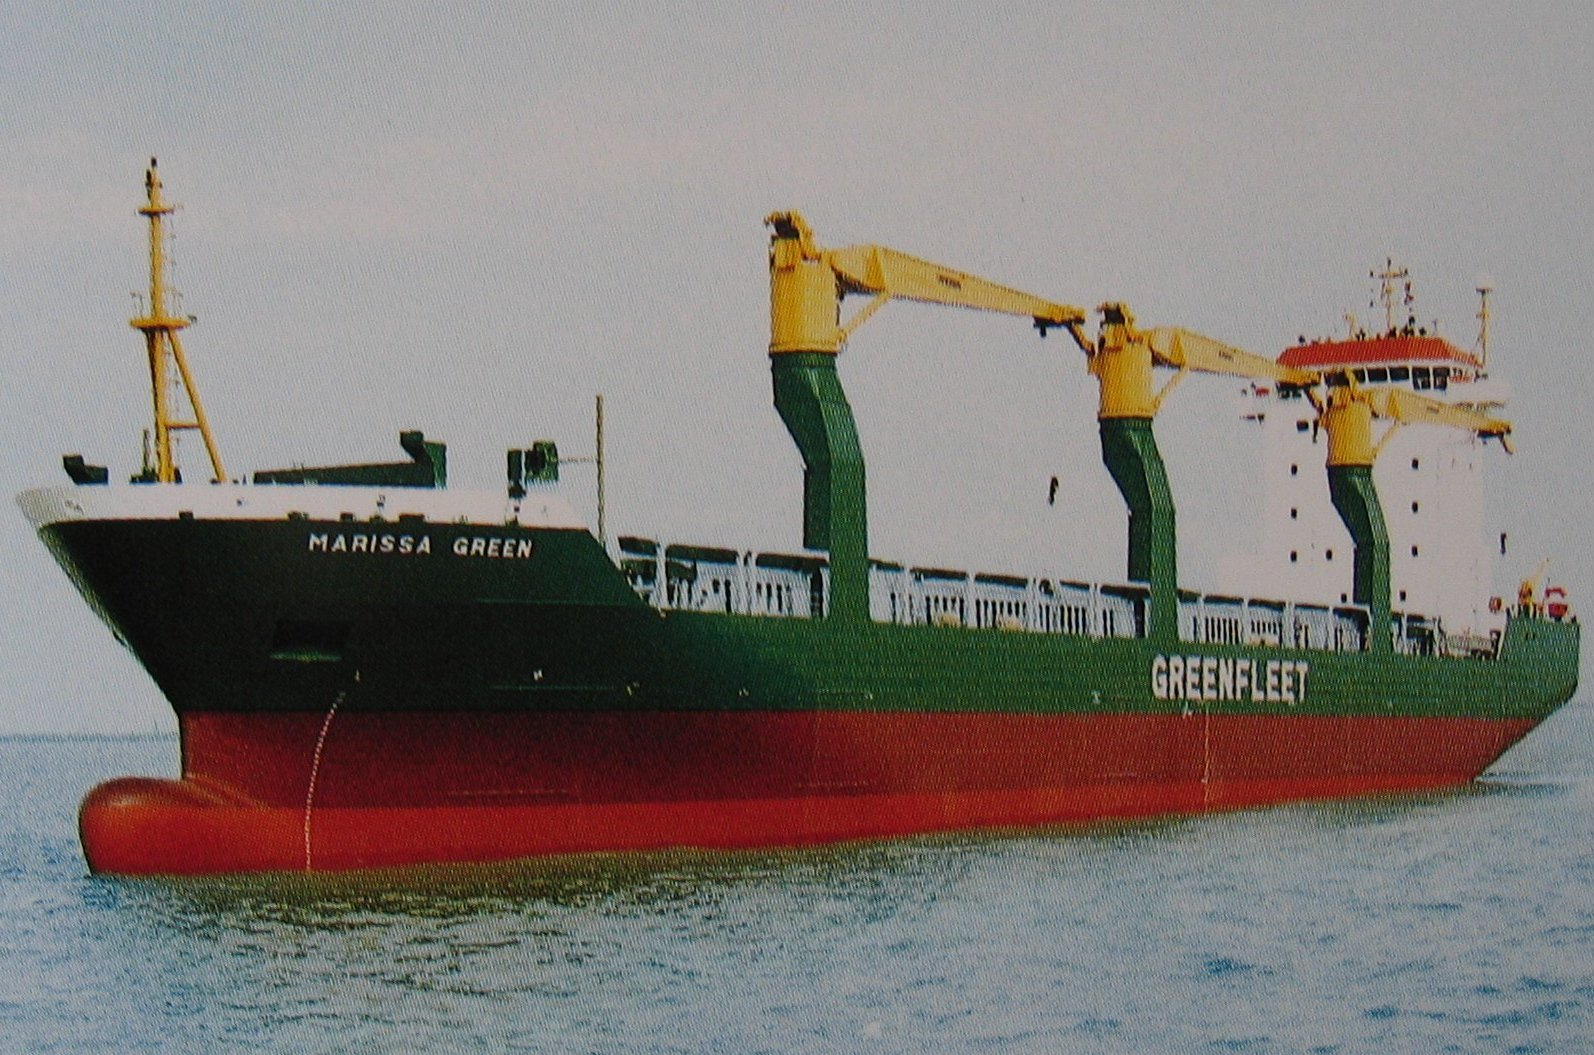 77021_163000_DWT_MPC_Container_Ship_122_106lo.JPG